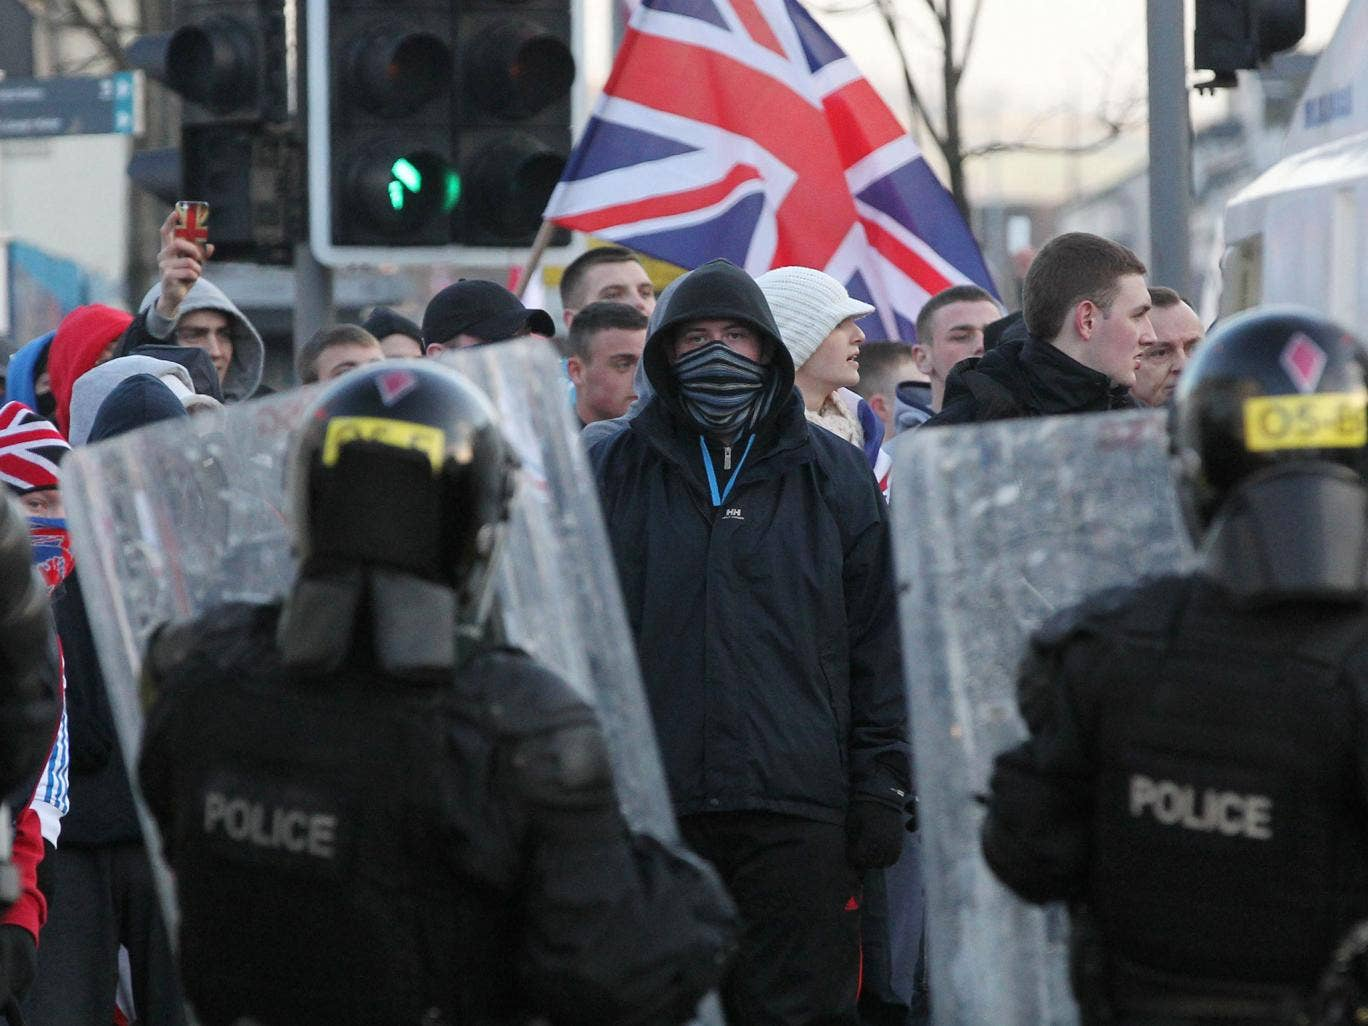 Loyalist protesters with Union flags in East Belfast in January 2012